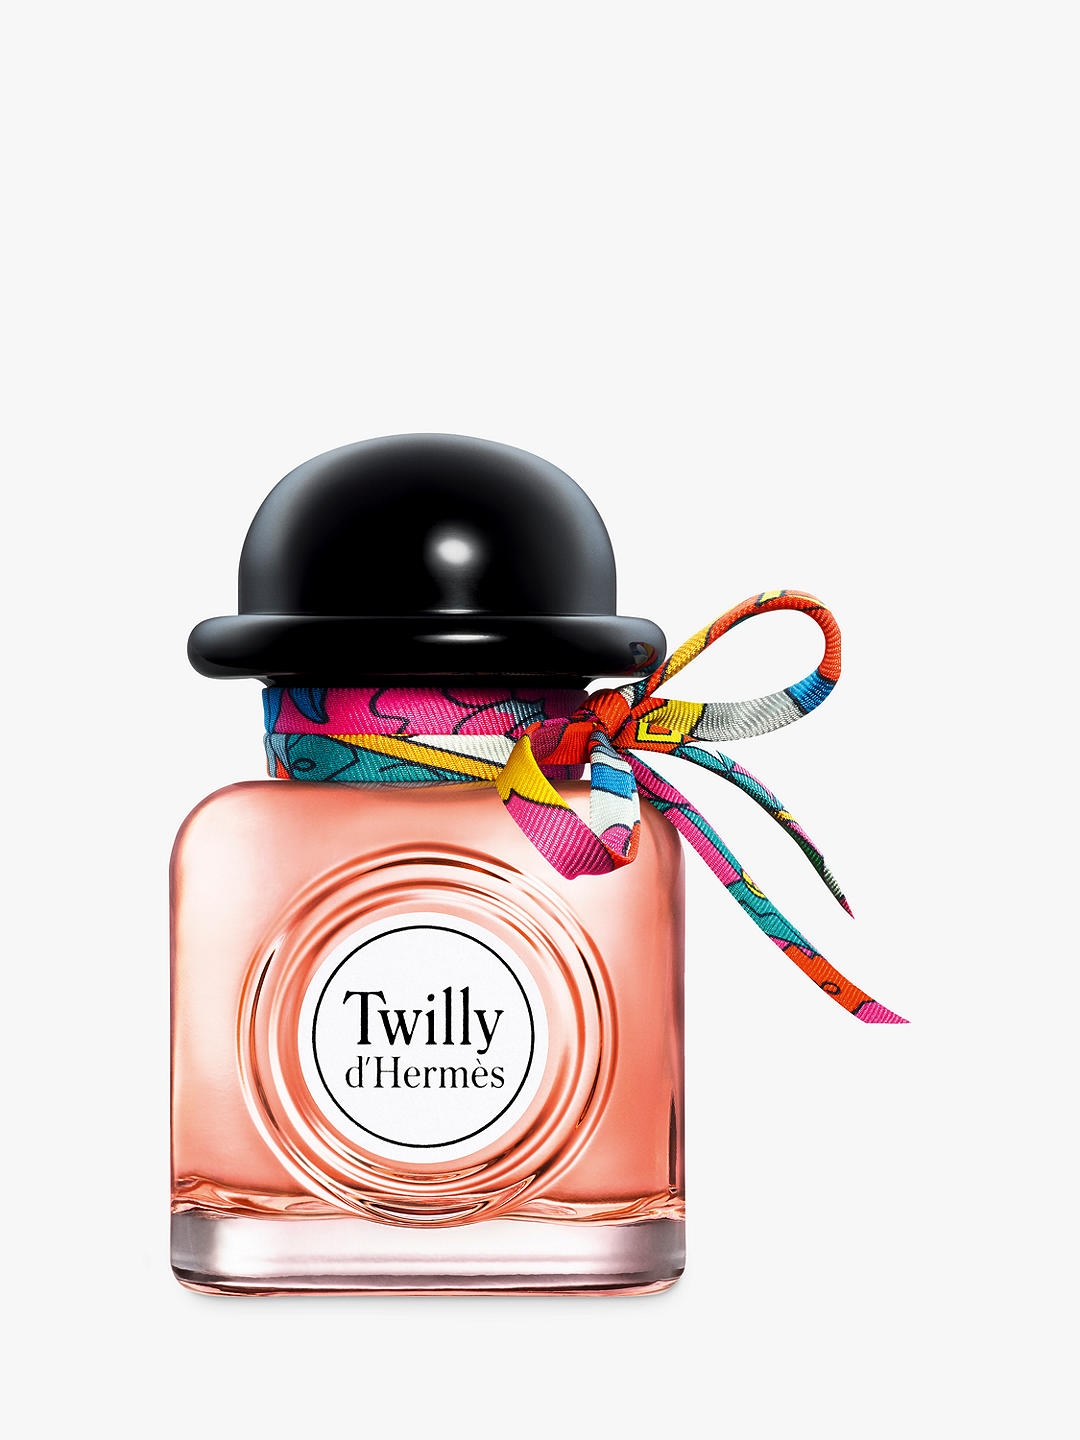 Twilly d'Hermes perfume